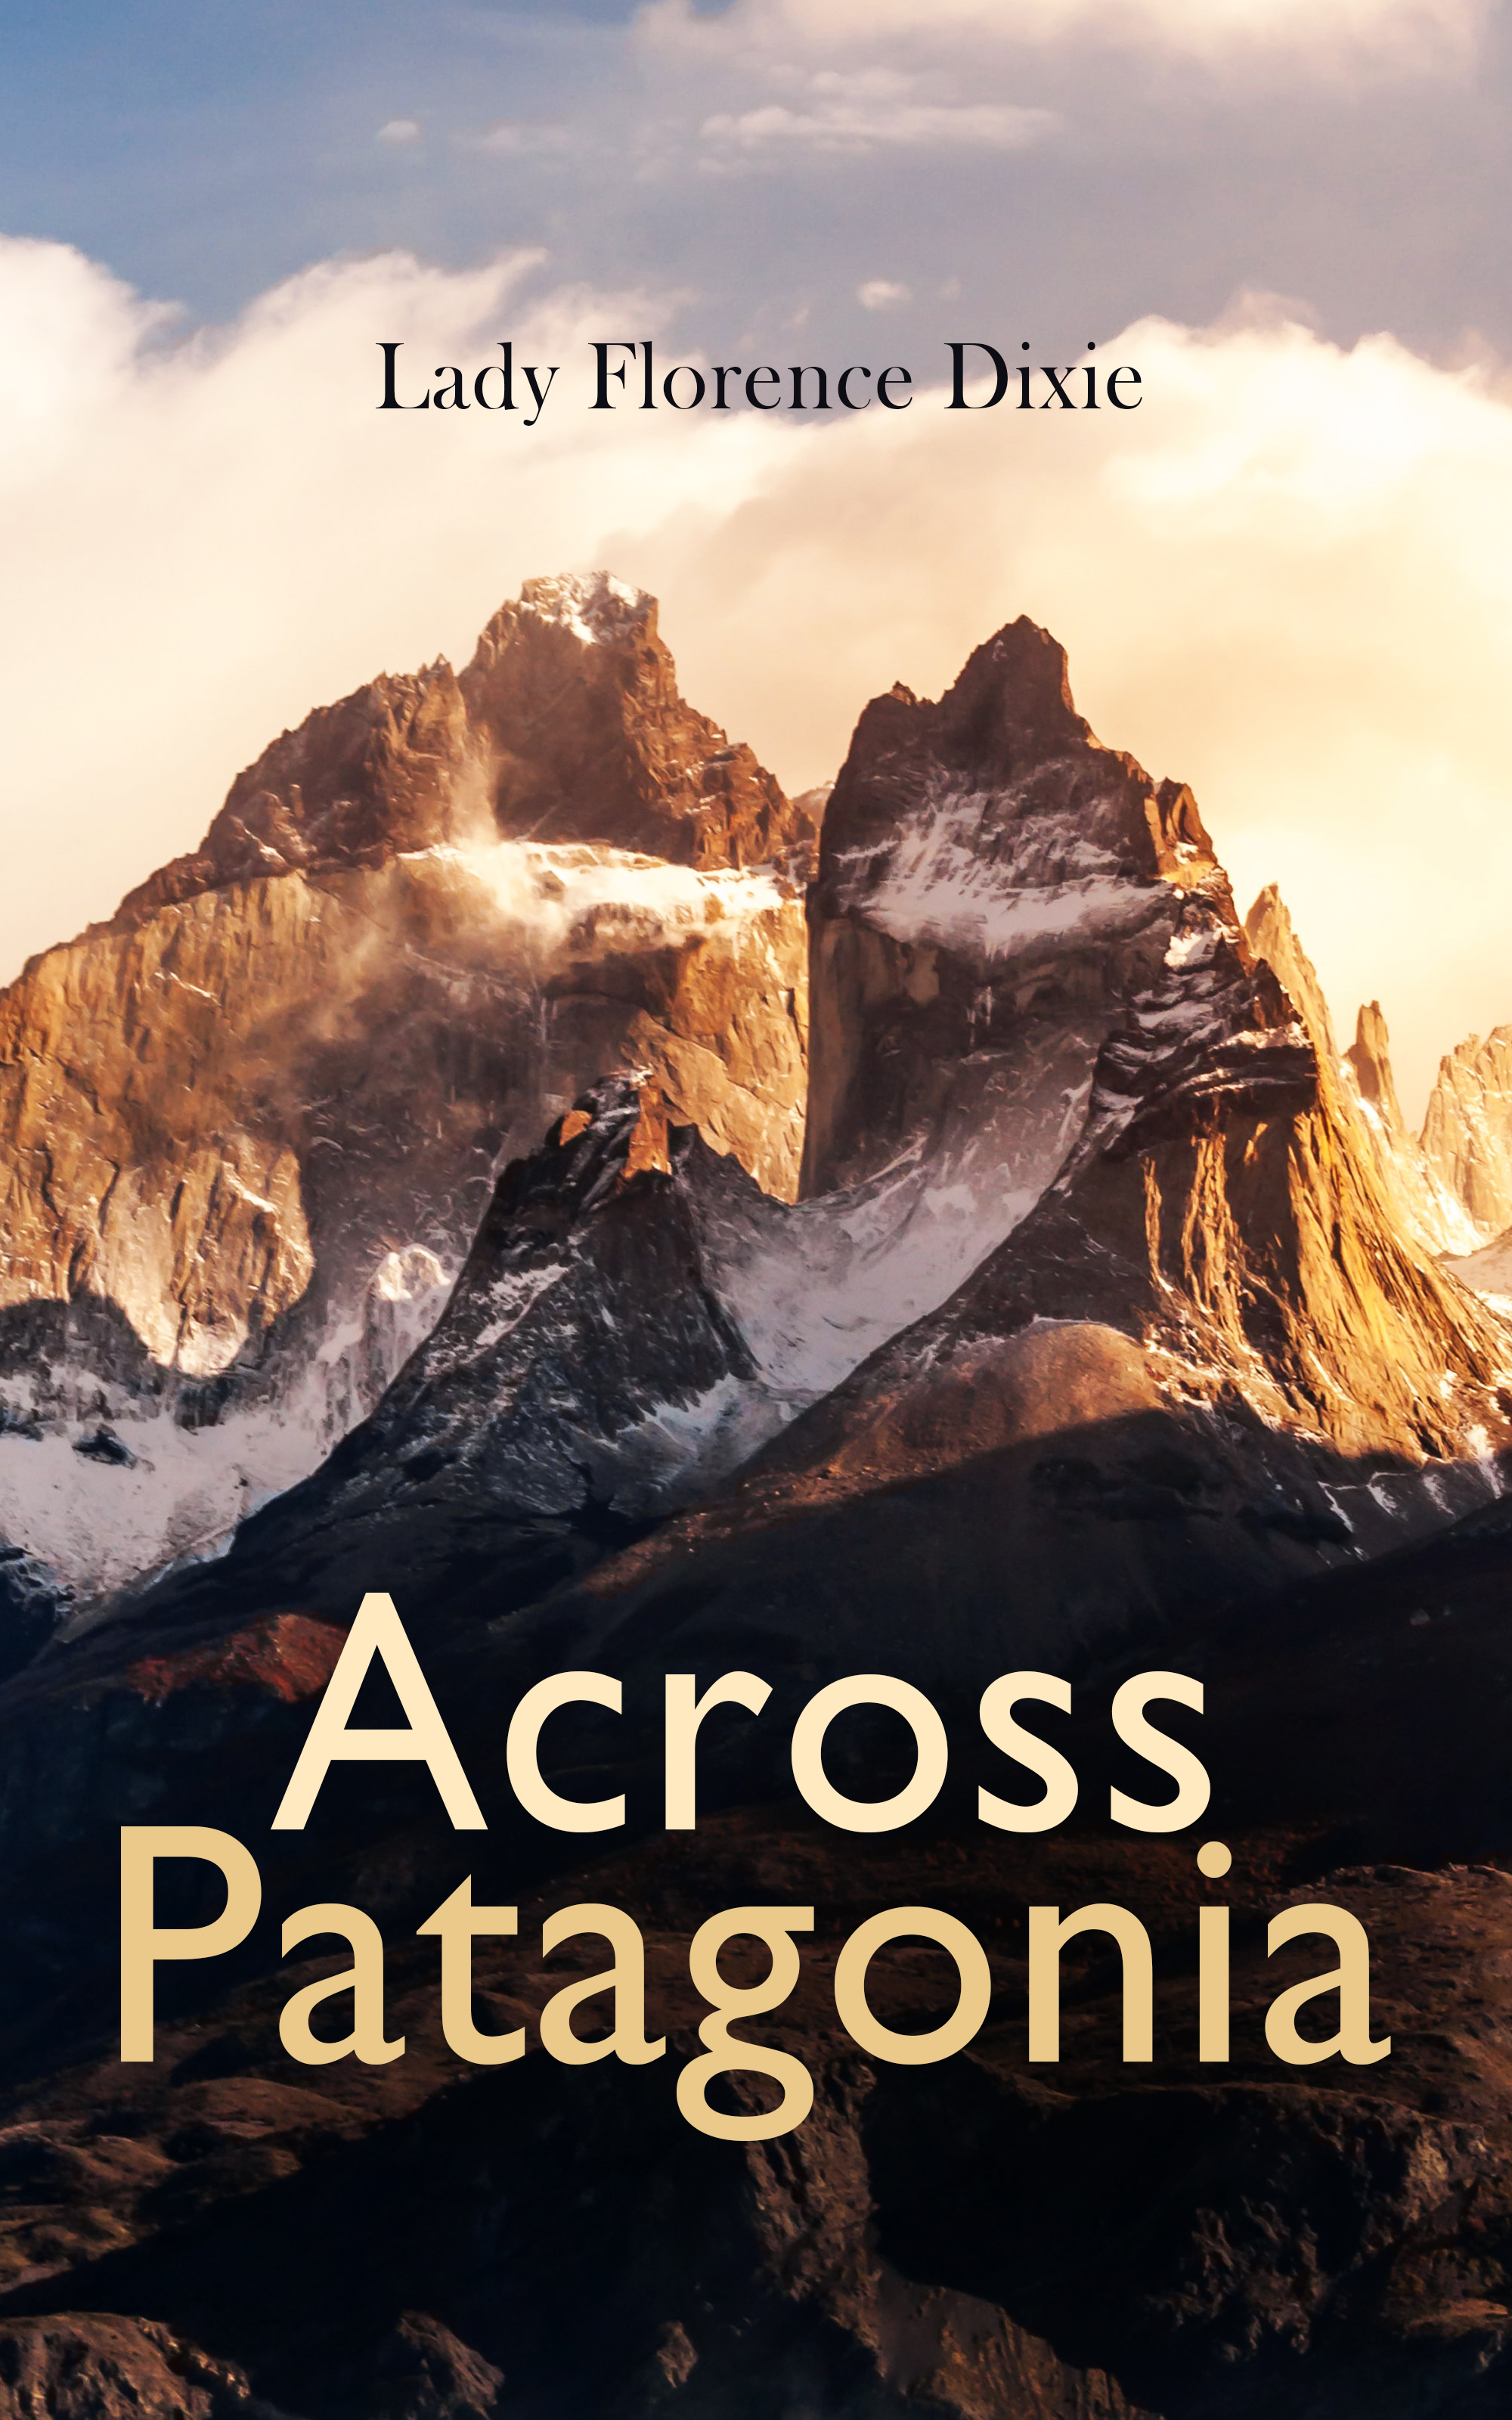 Lady Florence Dixie Across Patagonia john w hesley jan g hesley rent two films and let s talk in the morning using popular movies in psychotherapy